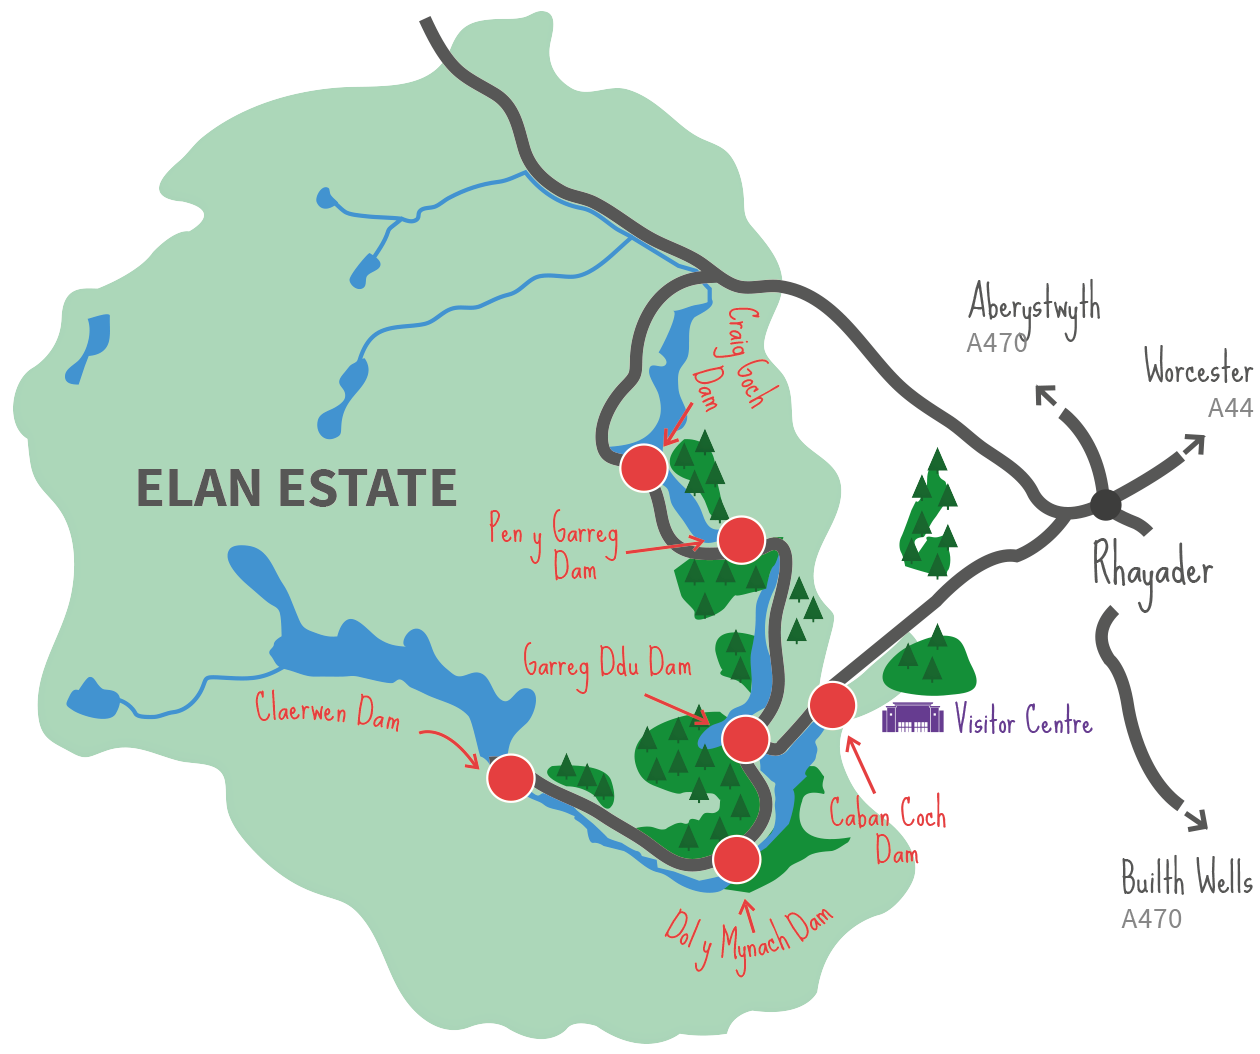 Reservoirs and dams elan valley